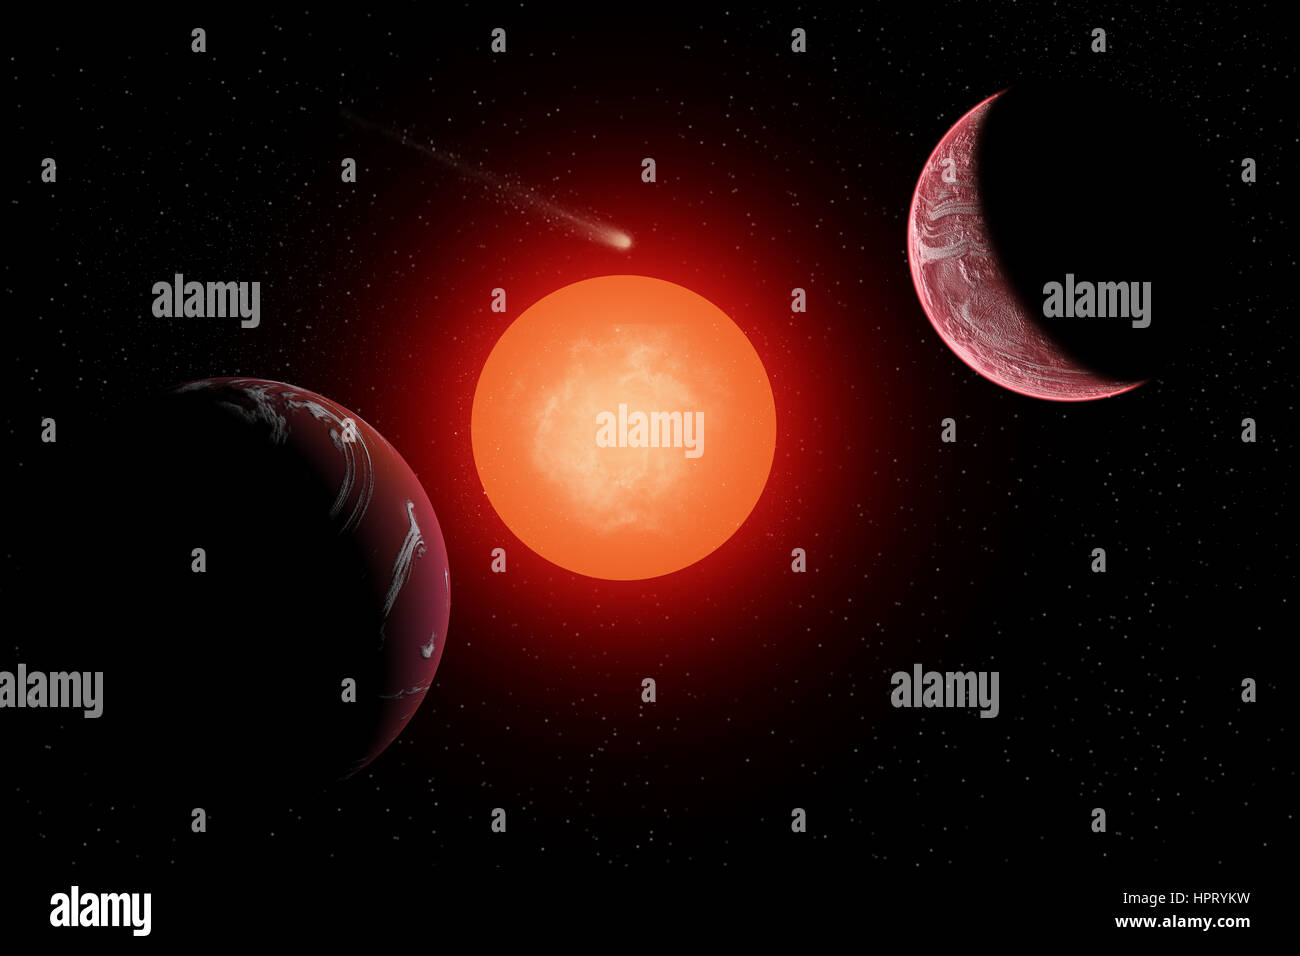 Two Exoplanets In Orbit Around A Red Giant Sun Stock Photo